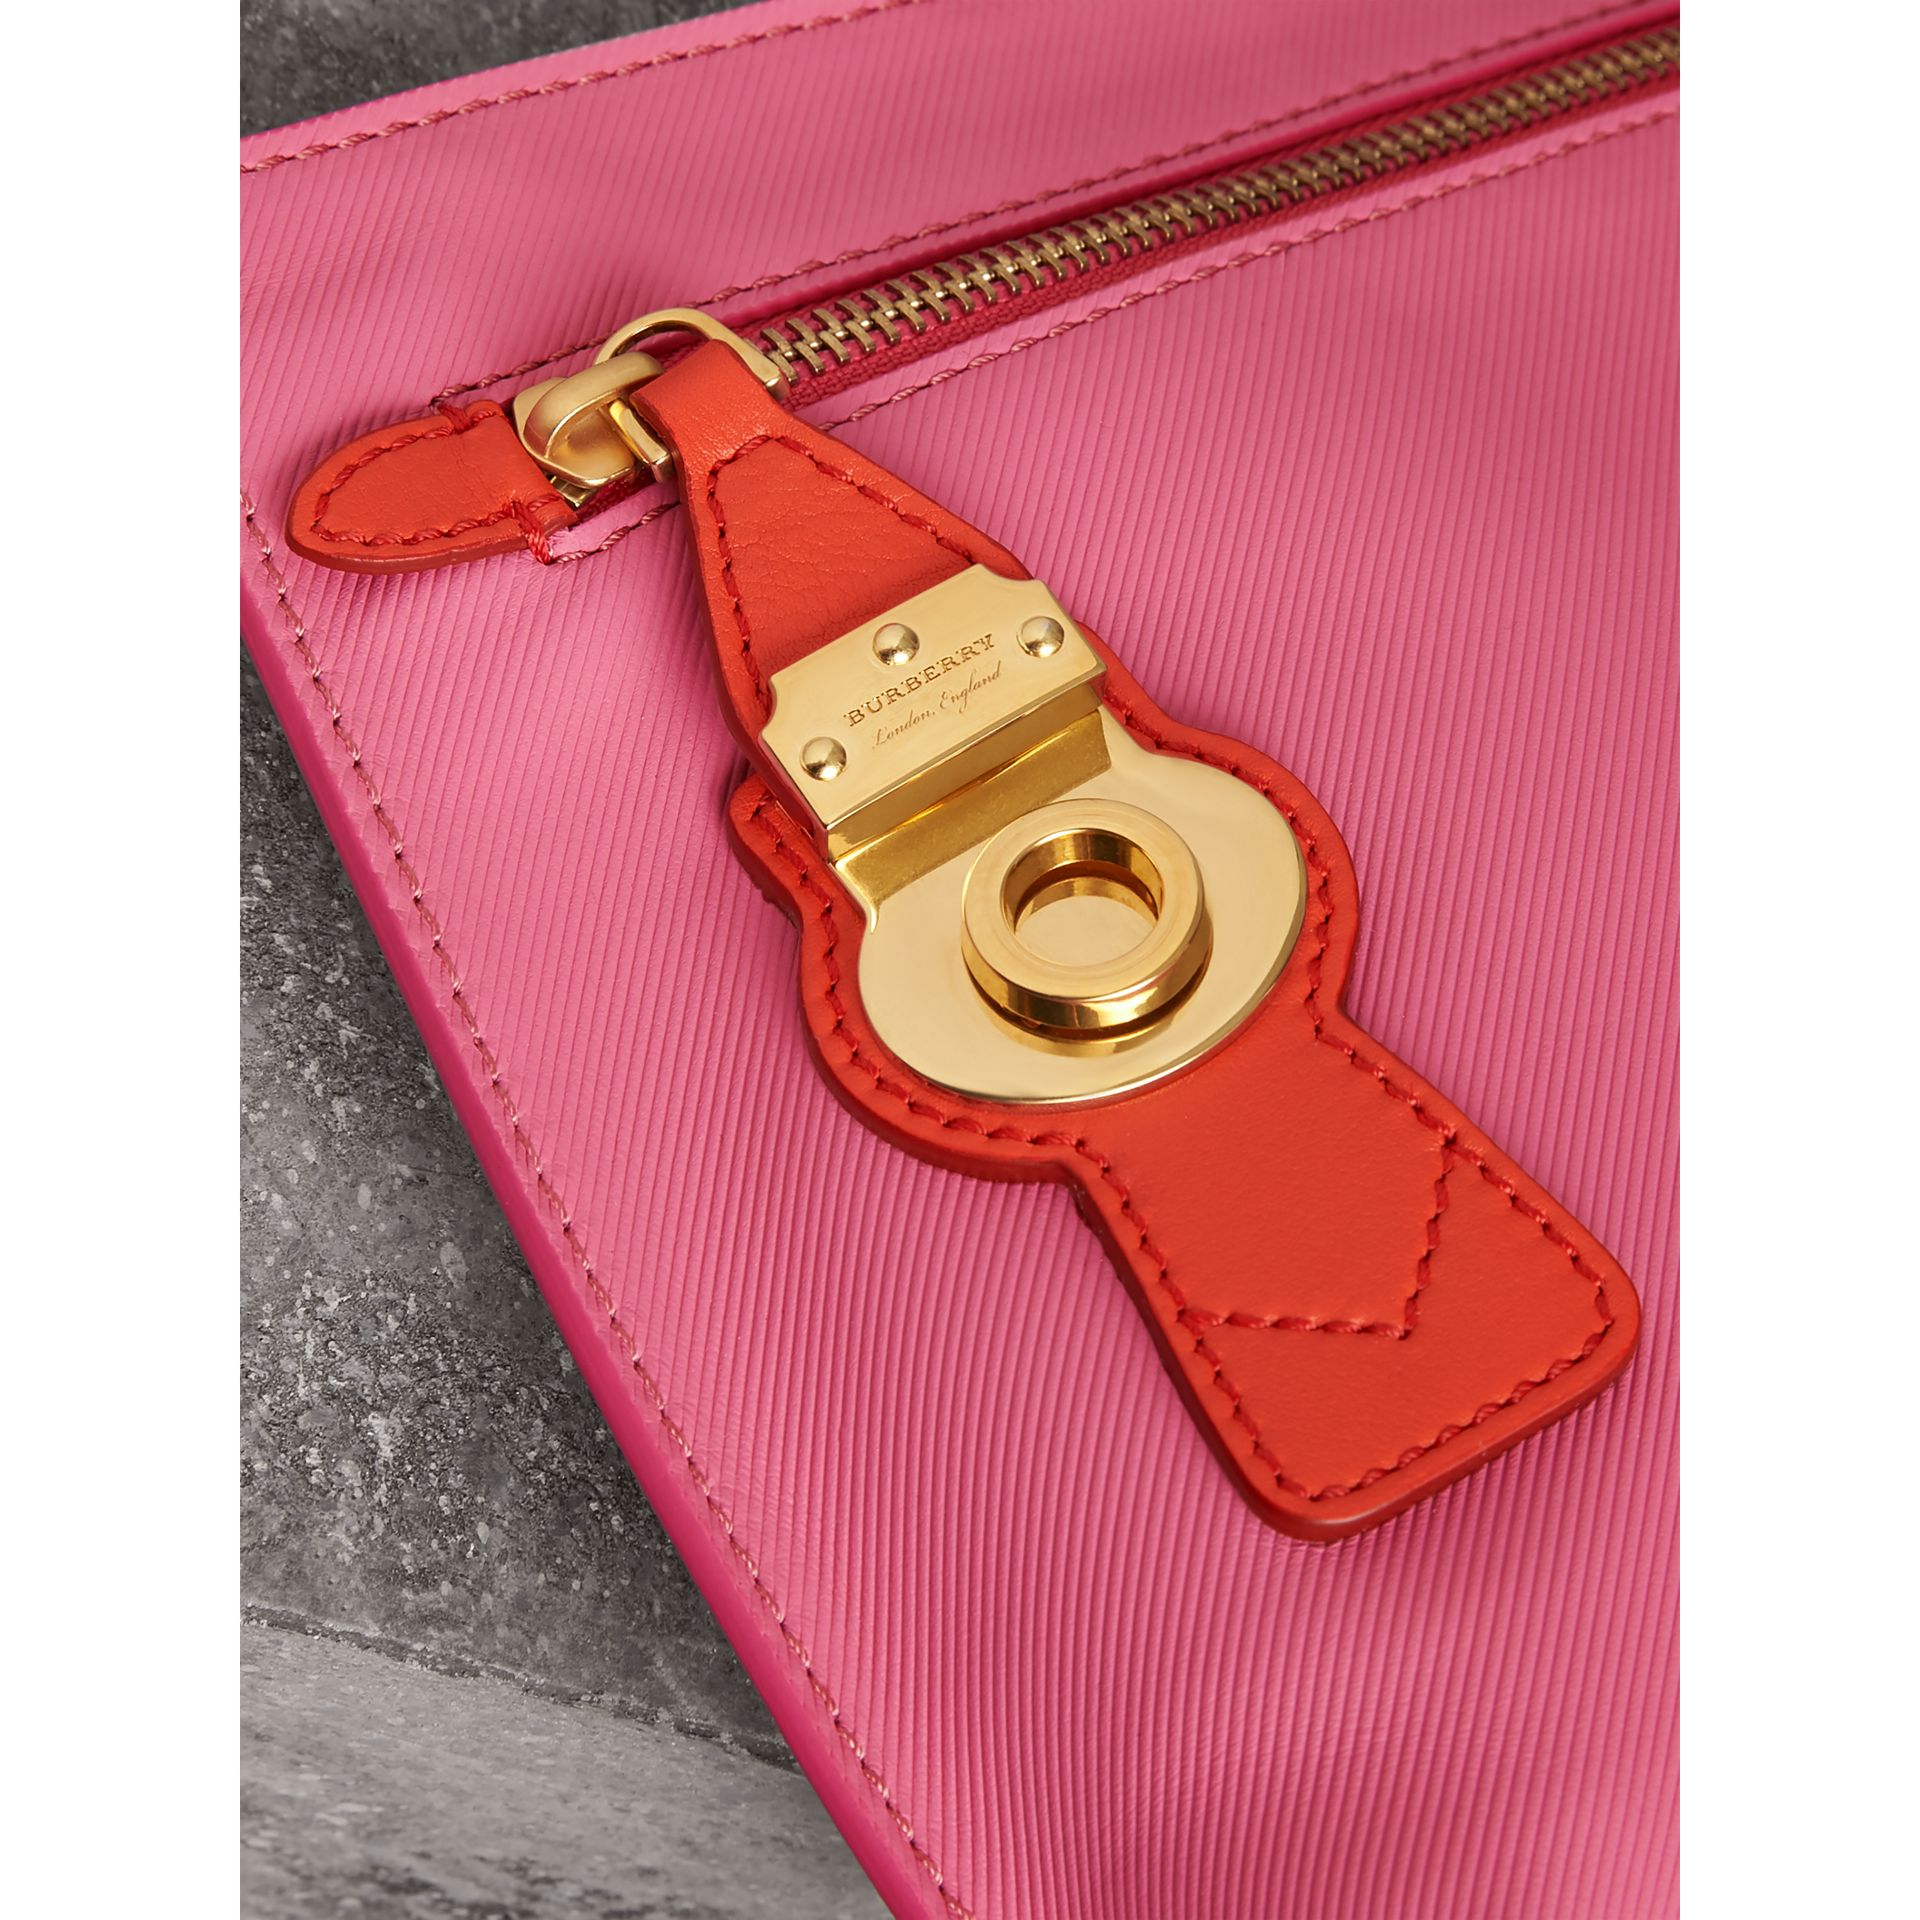 Two-tone Trench Leather Wristlet Pouch in Rose Pink - Women | Burberry Canada - gallery image 1